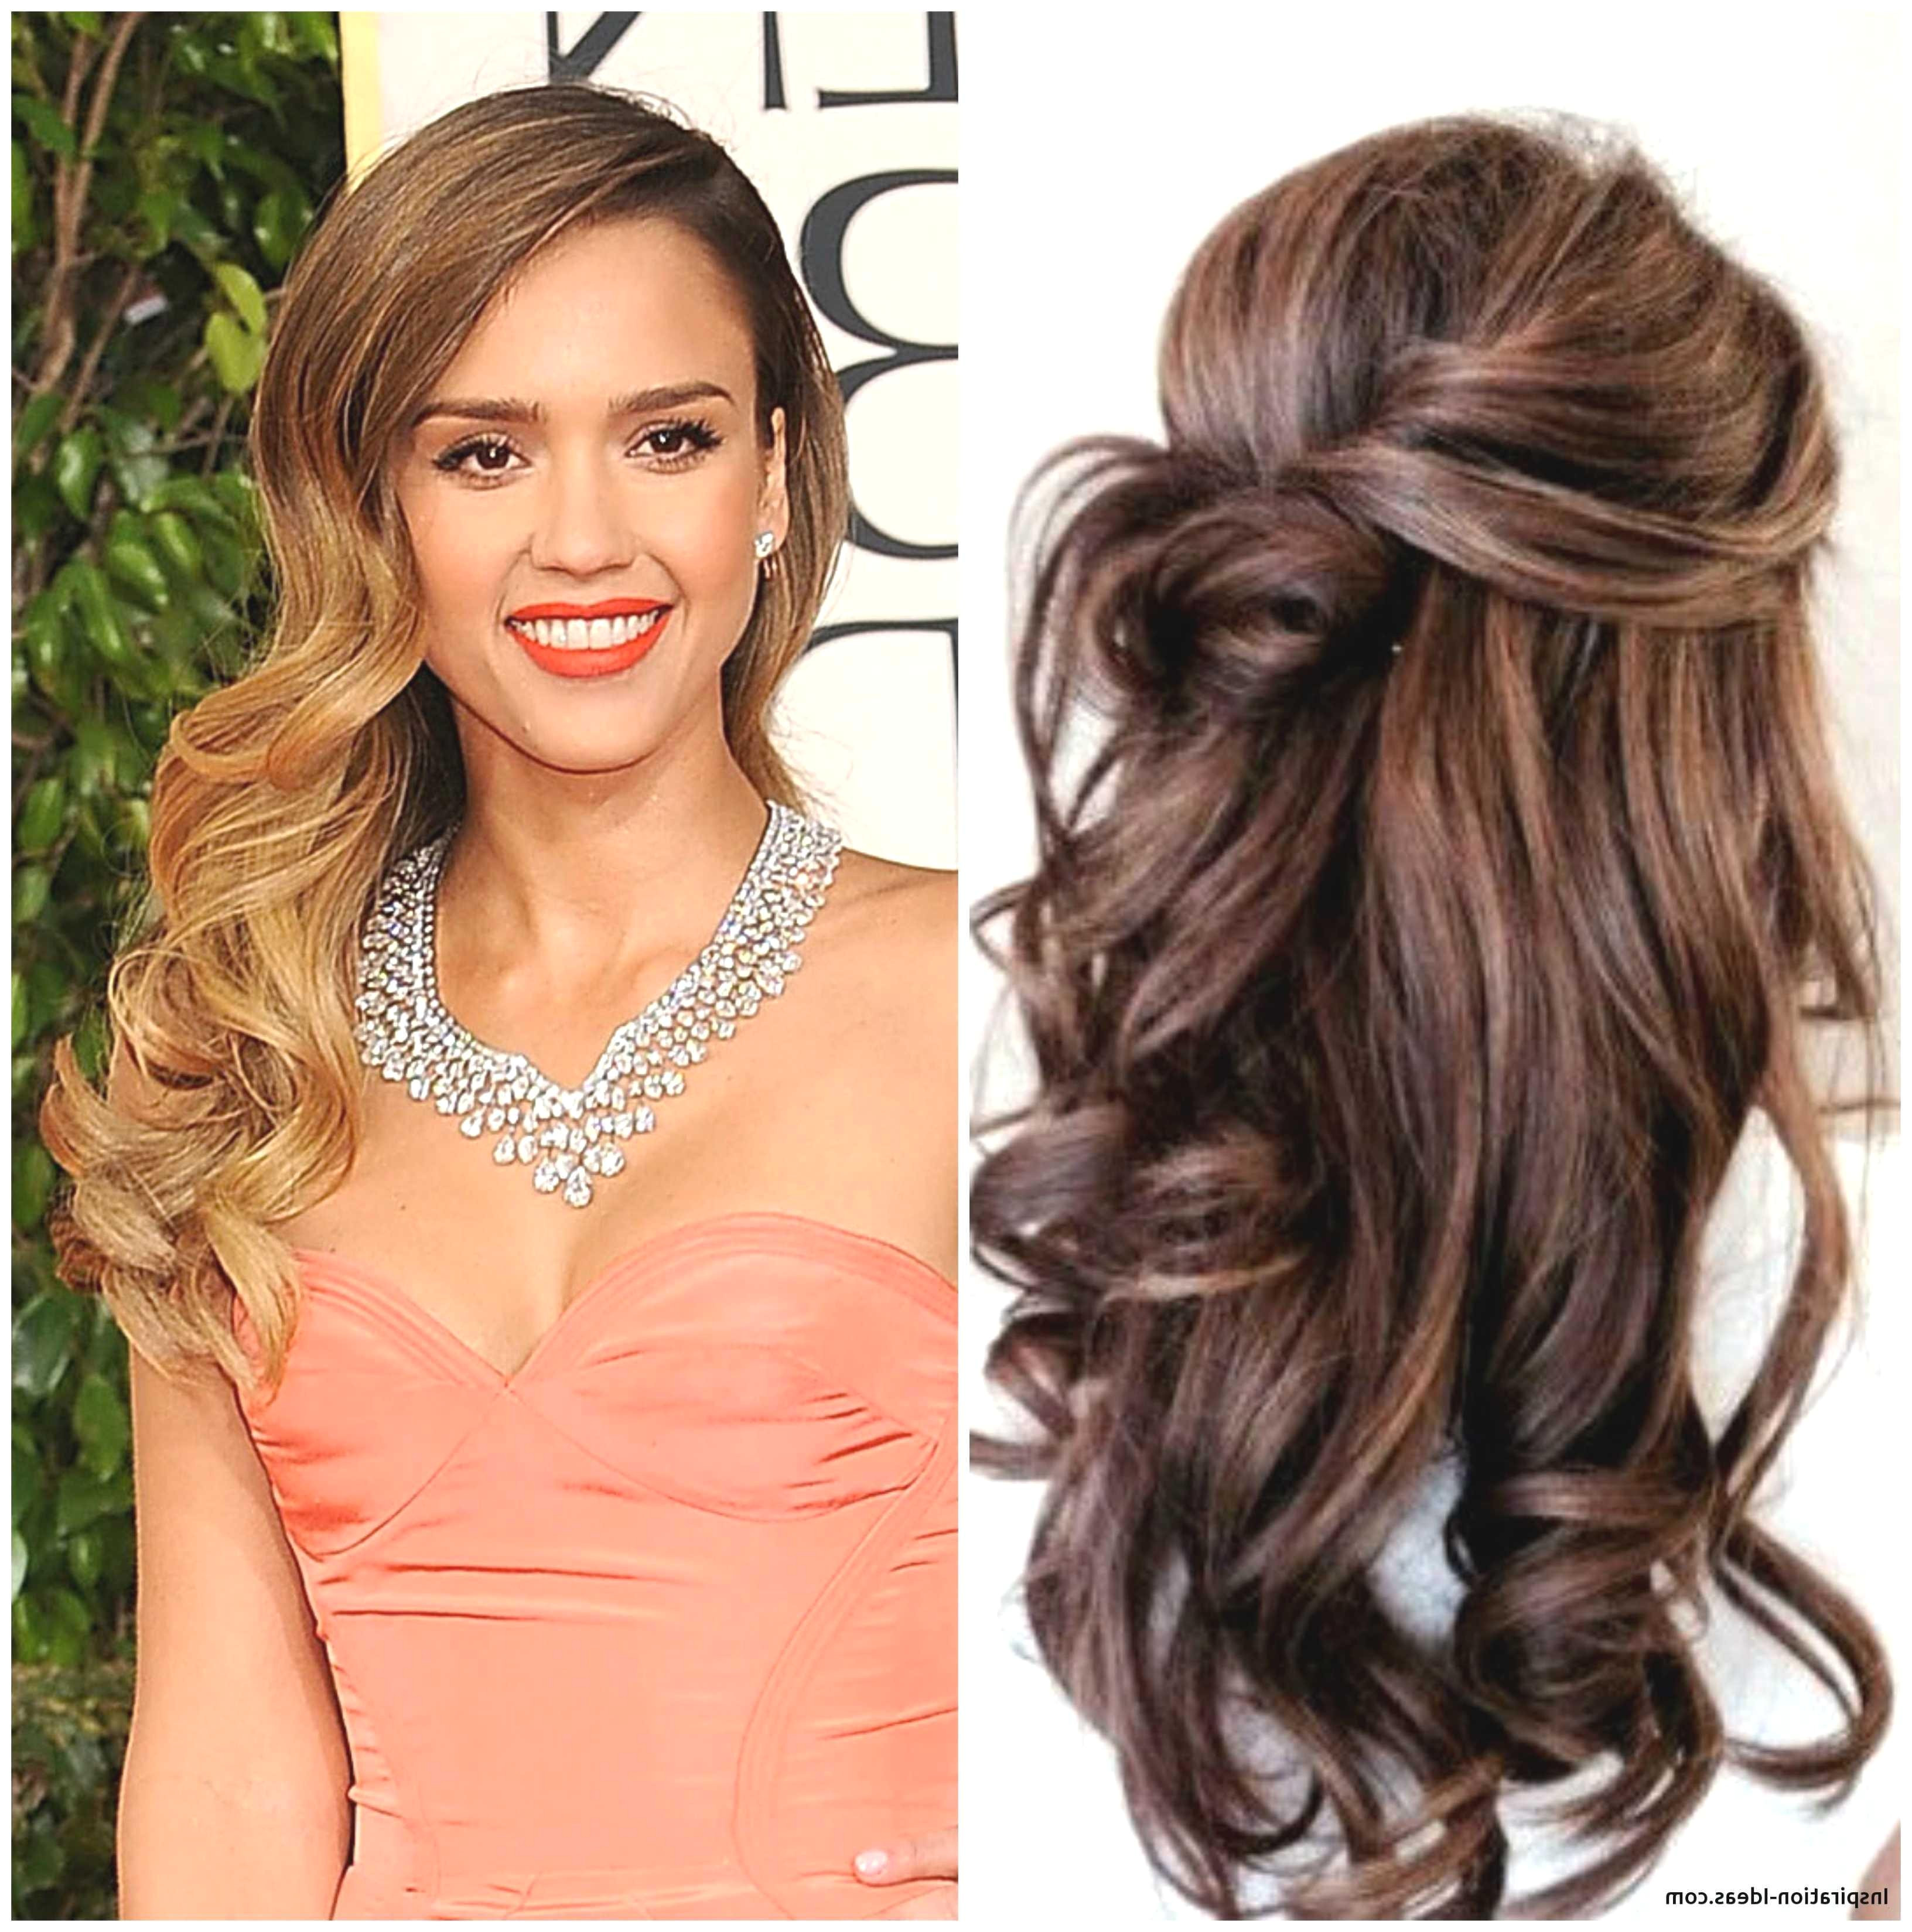 Different Hairstyles Girls New New Different Hairstyles for Girls with Names Ideas